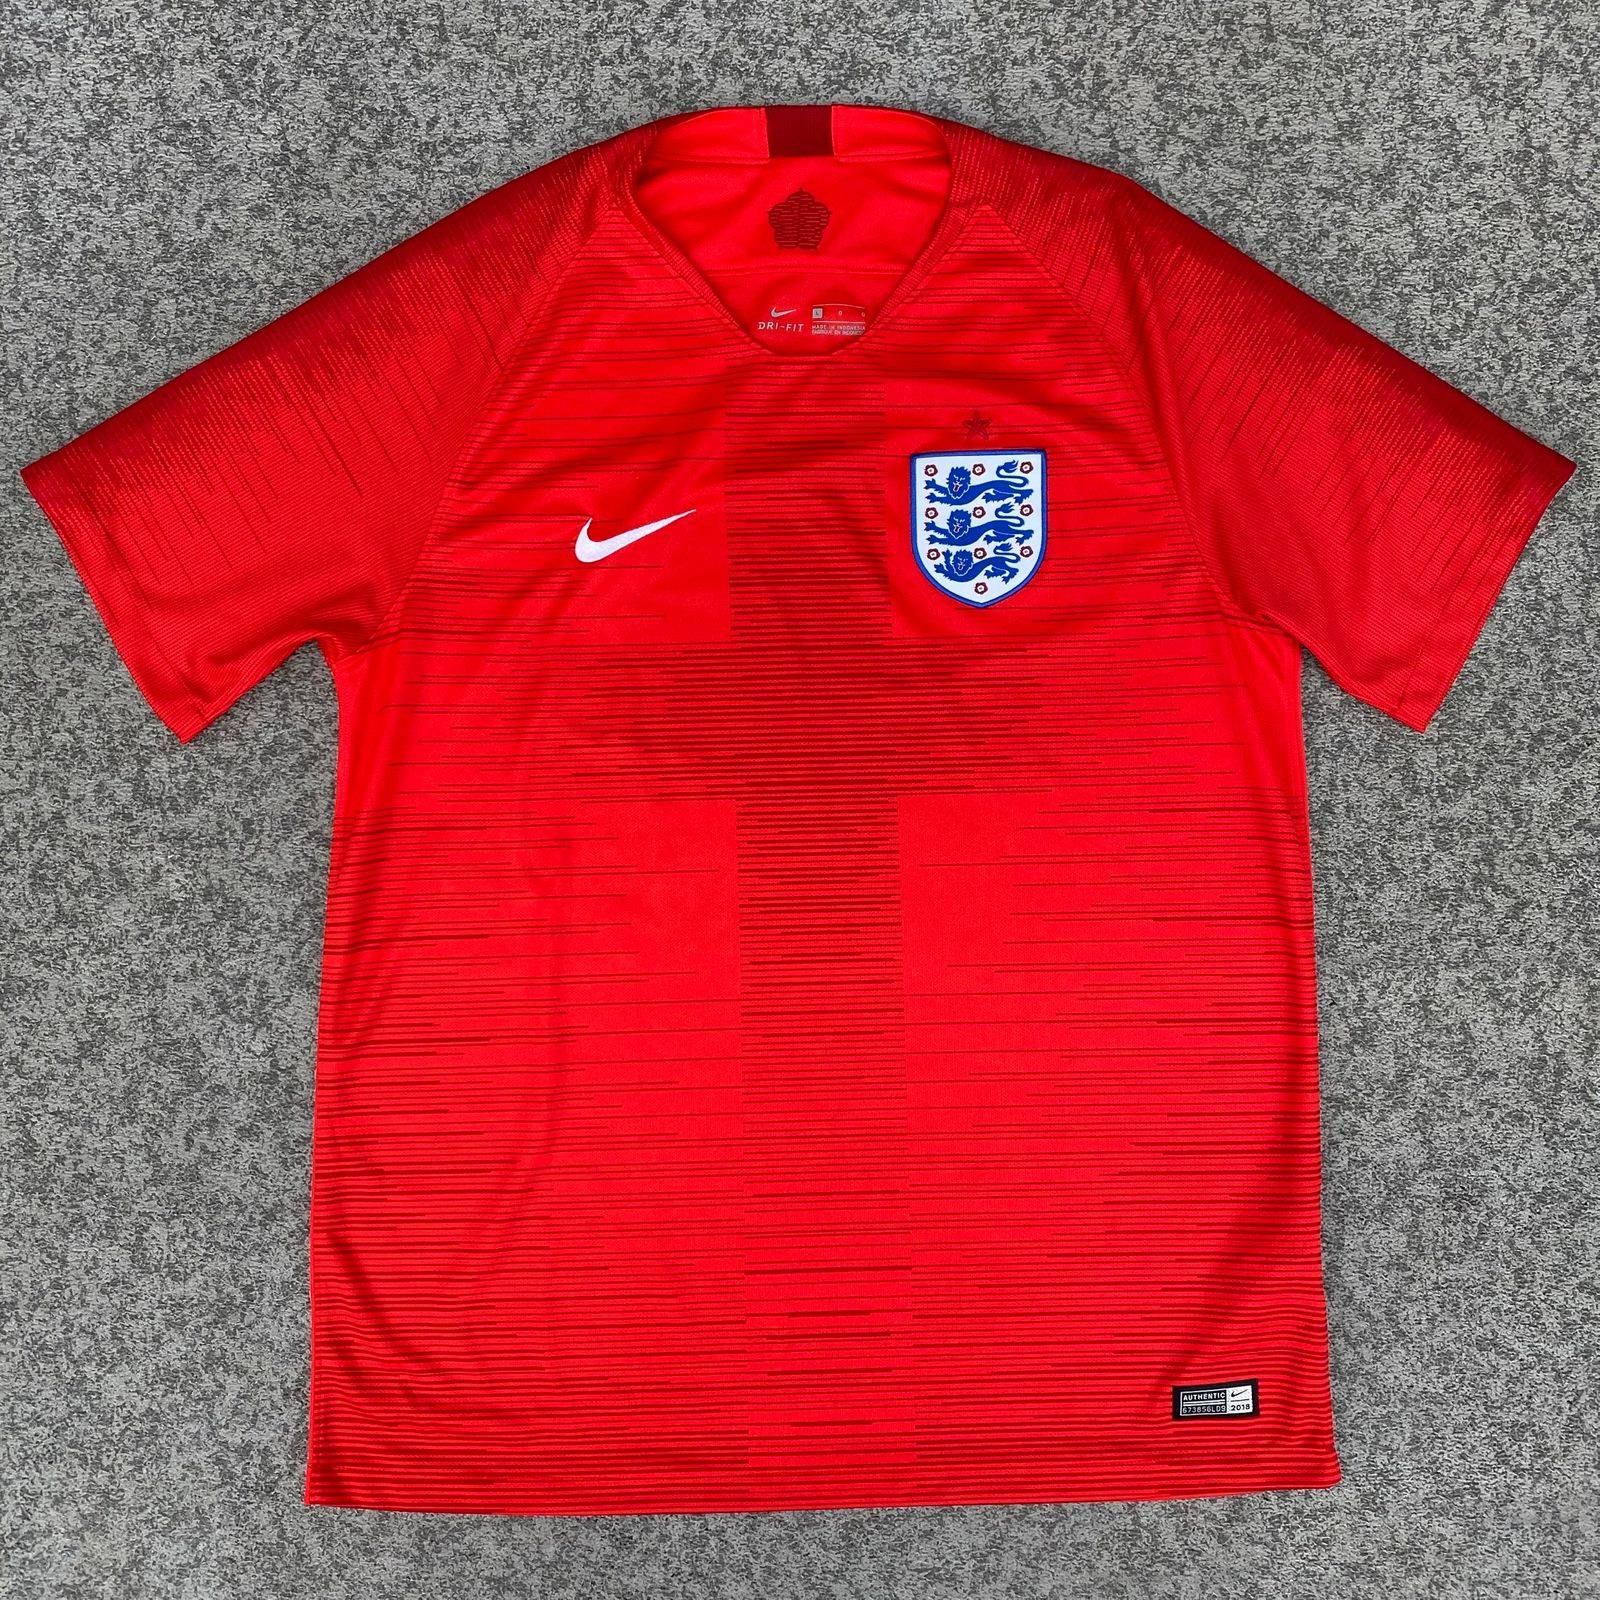 Nike 2018 Authentic England Jersey